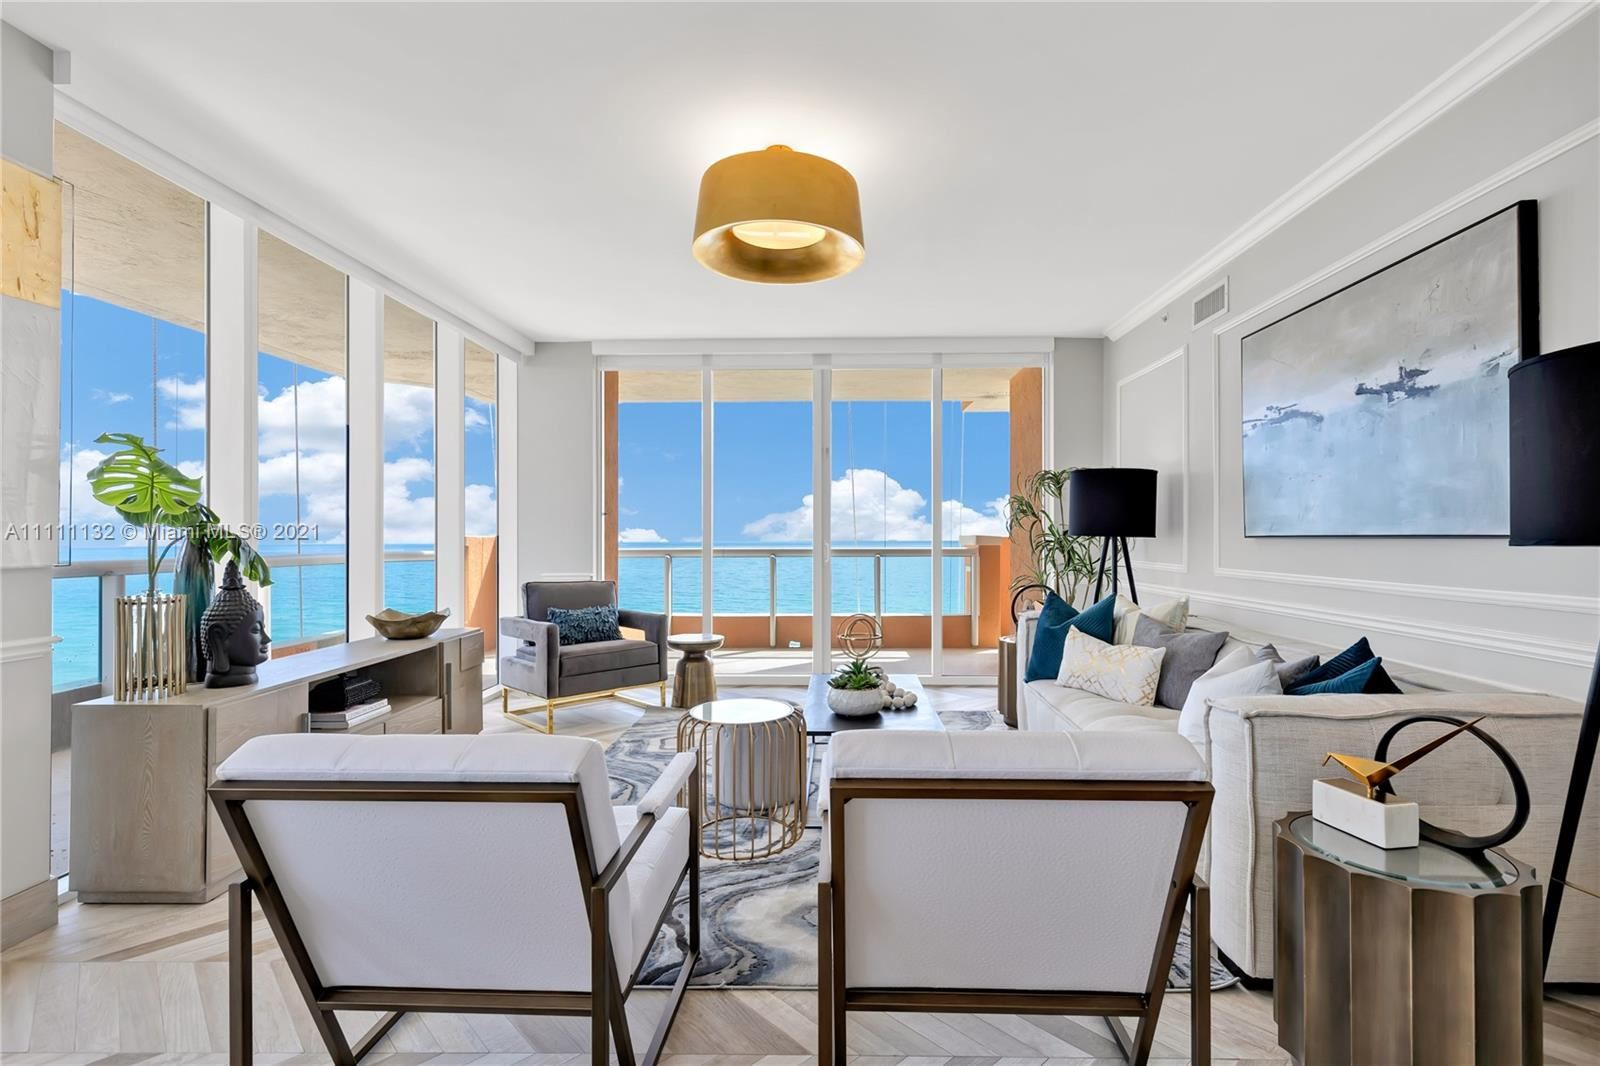 Photo of 17875 Collins Ave #901, Sunny Isles Beach, FL 33160 (MLS # A11111132)